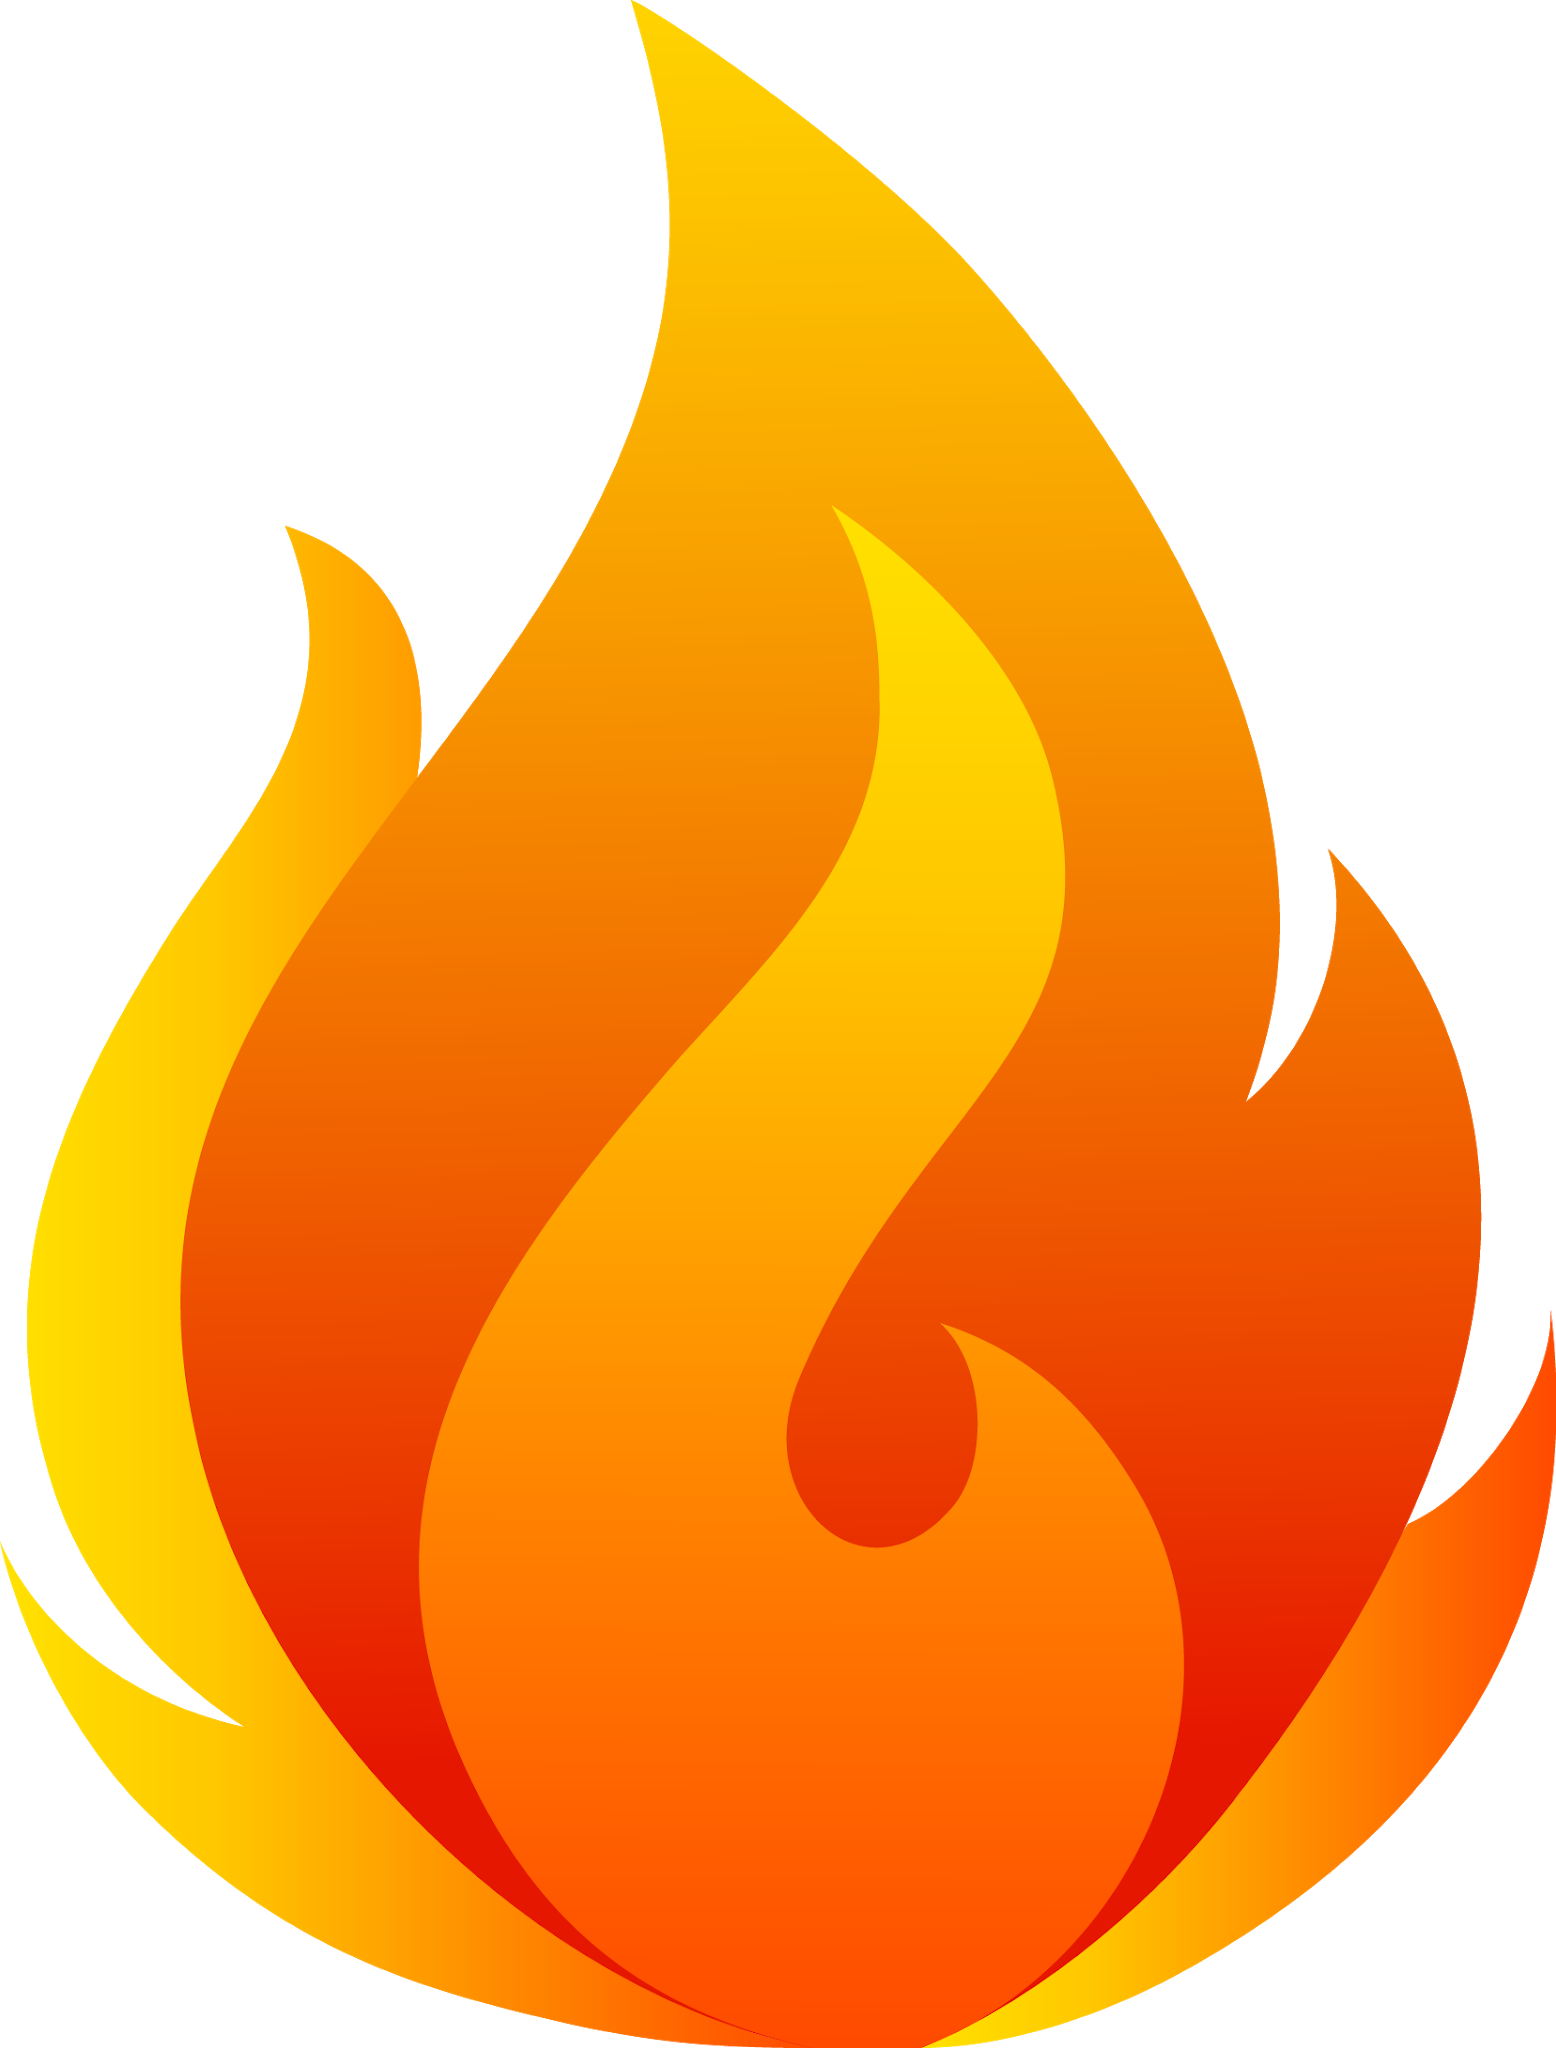 Pin by pngsector on Fire logo png Fire image, Flame art